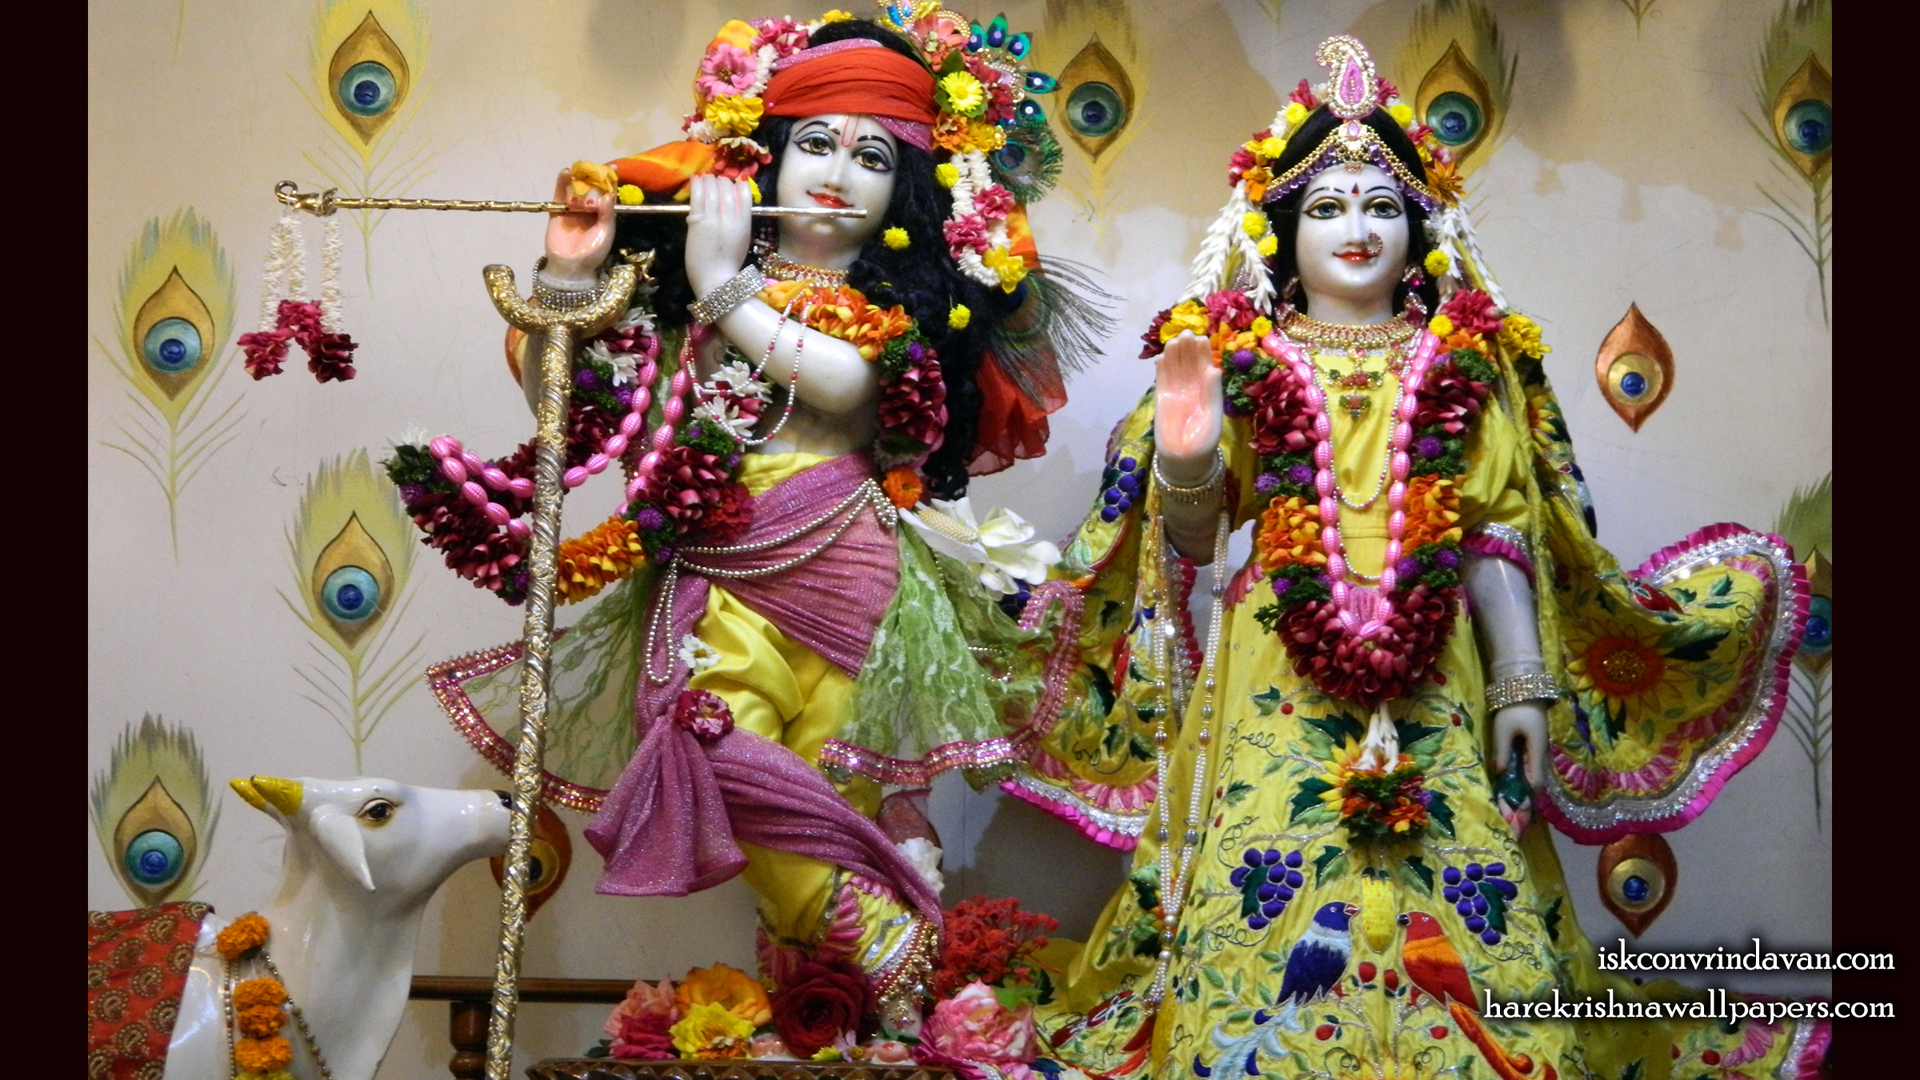 Sri Sri Radha Kunjabihari Wallpaper (010) Size 1920x1080 Download